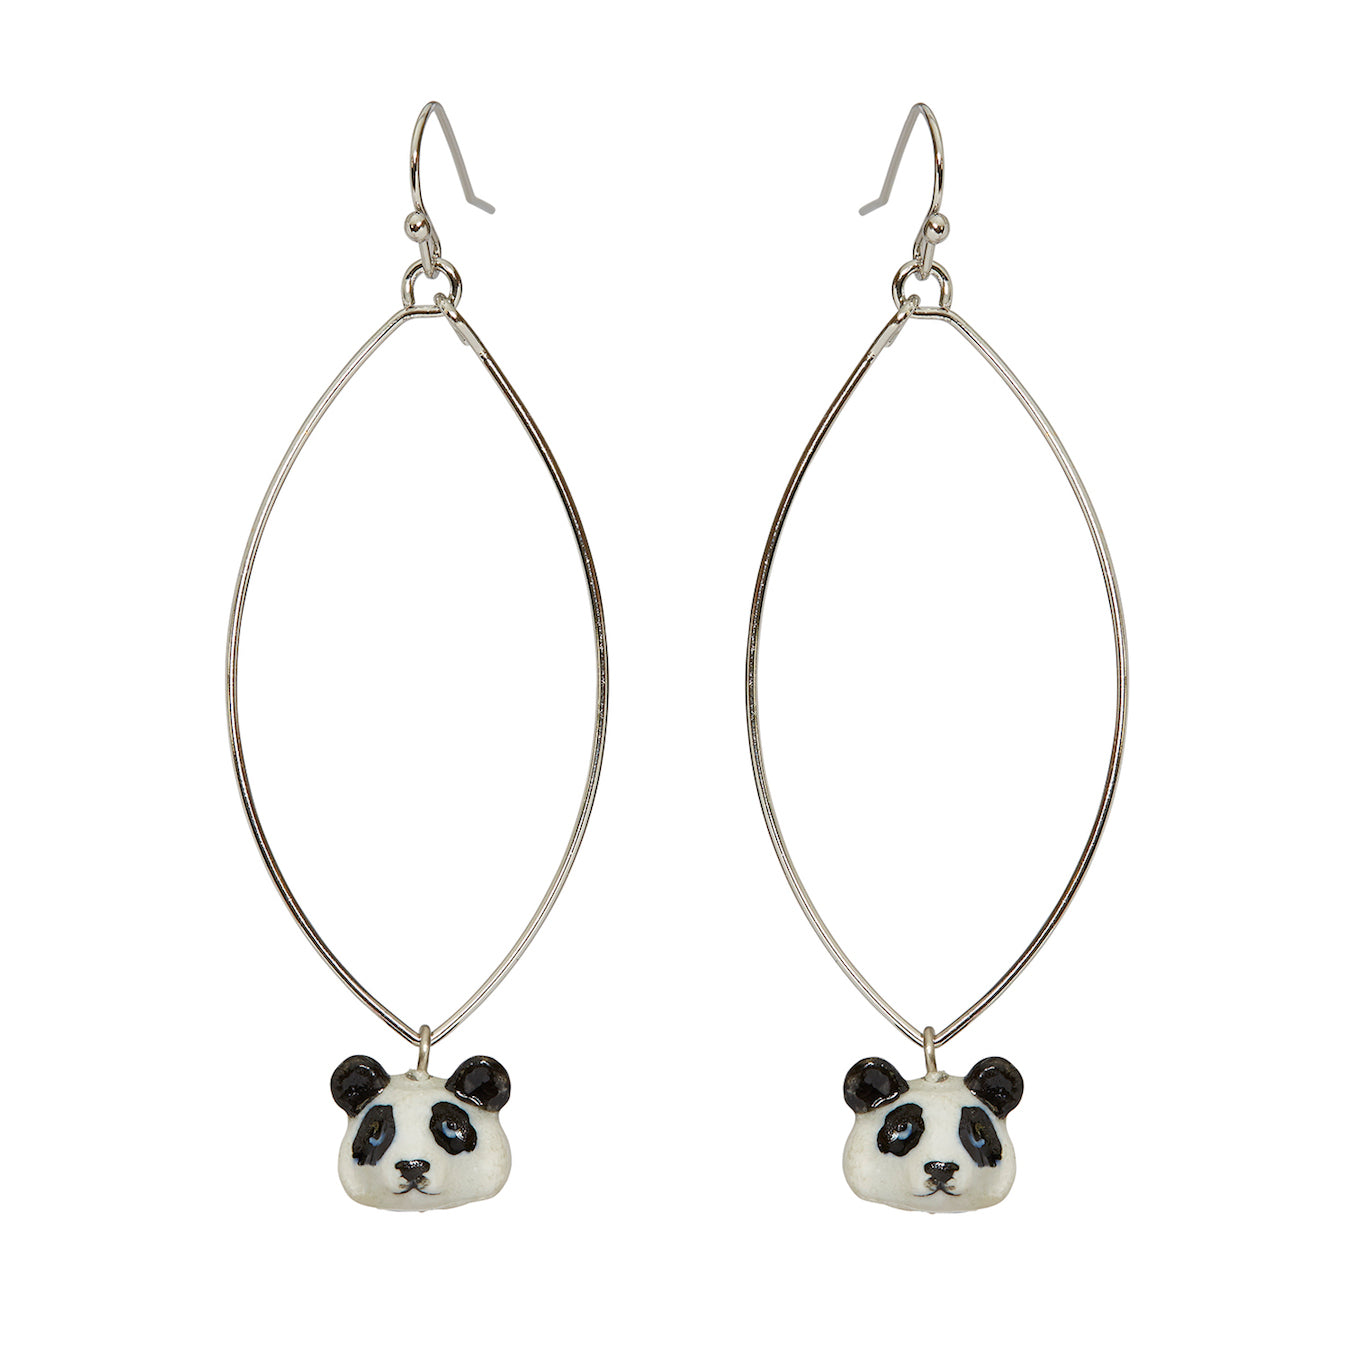 Oval Drop Tiny Panda Head Earrings